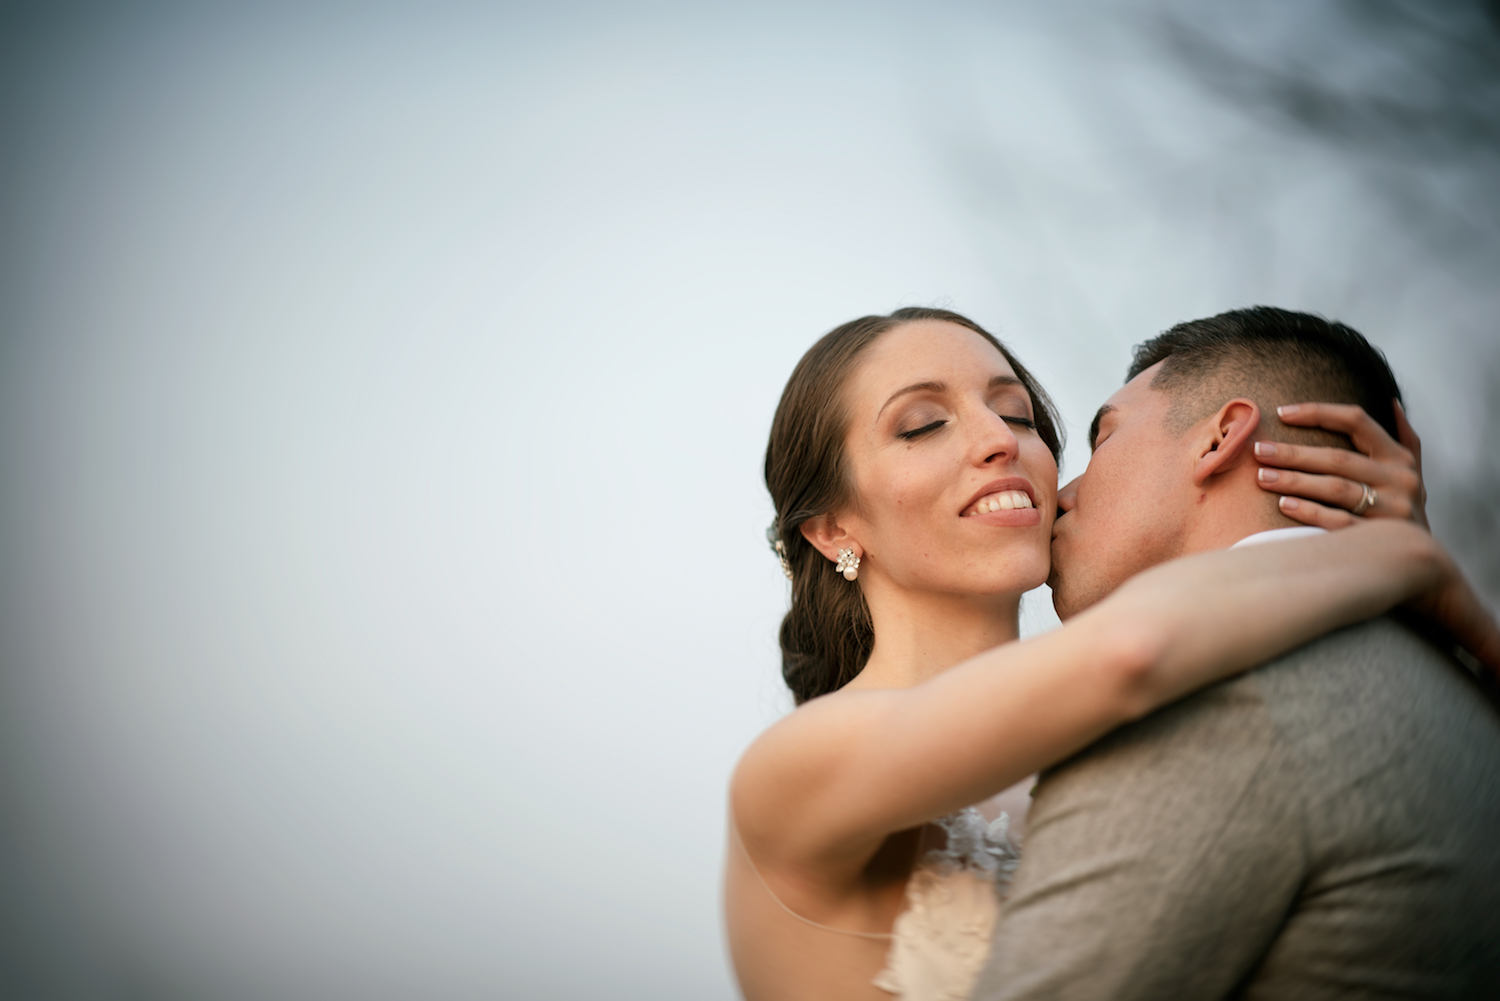 Kelly and Paul – Wedding Photo Highlights from Bear Brook Valley in Fredon Township, NJ